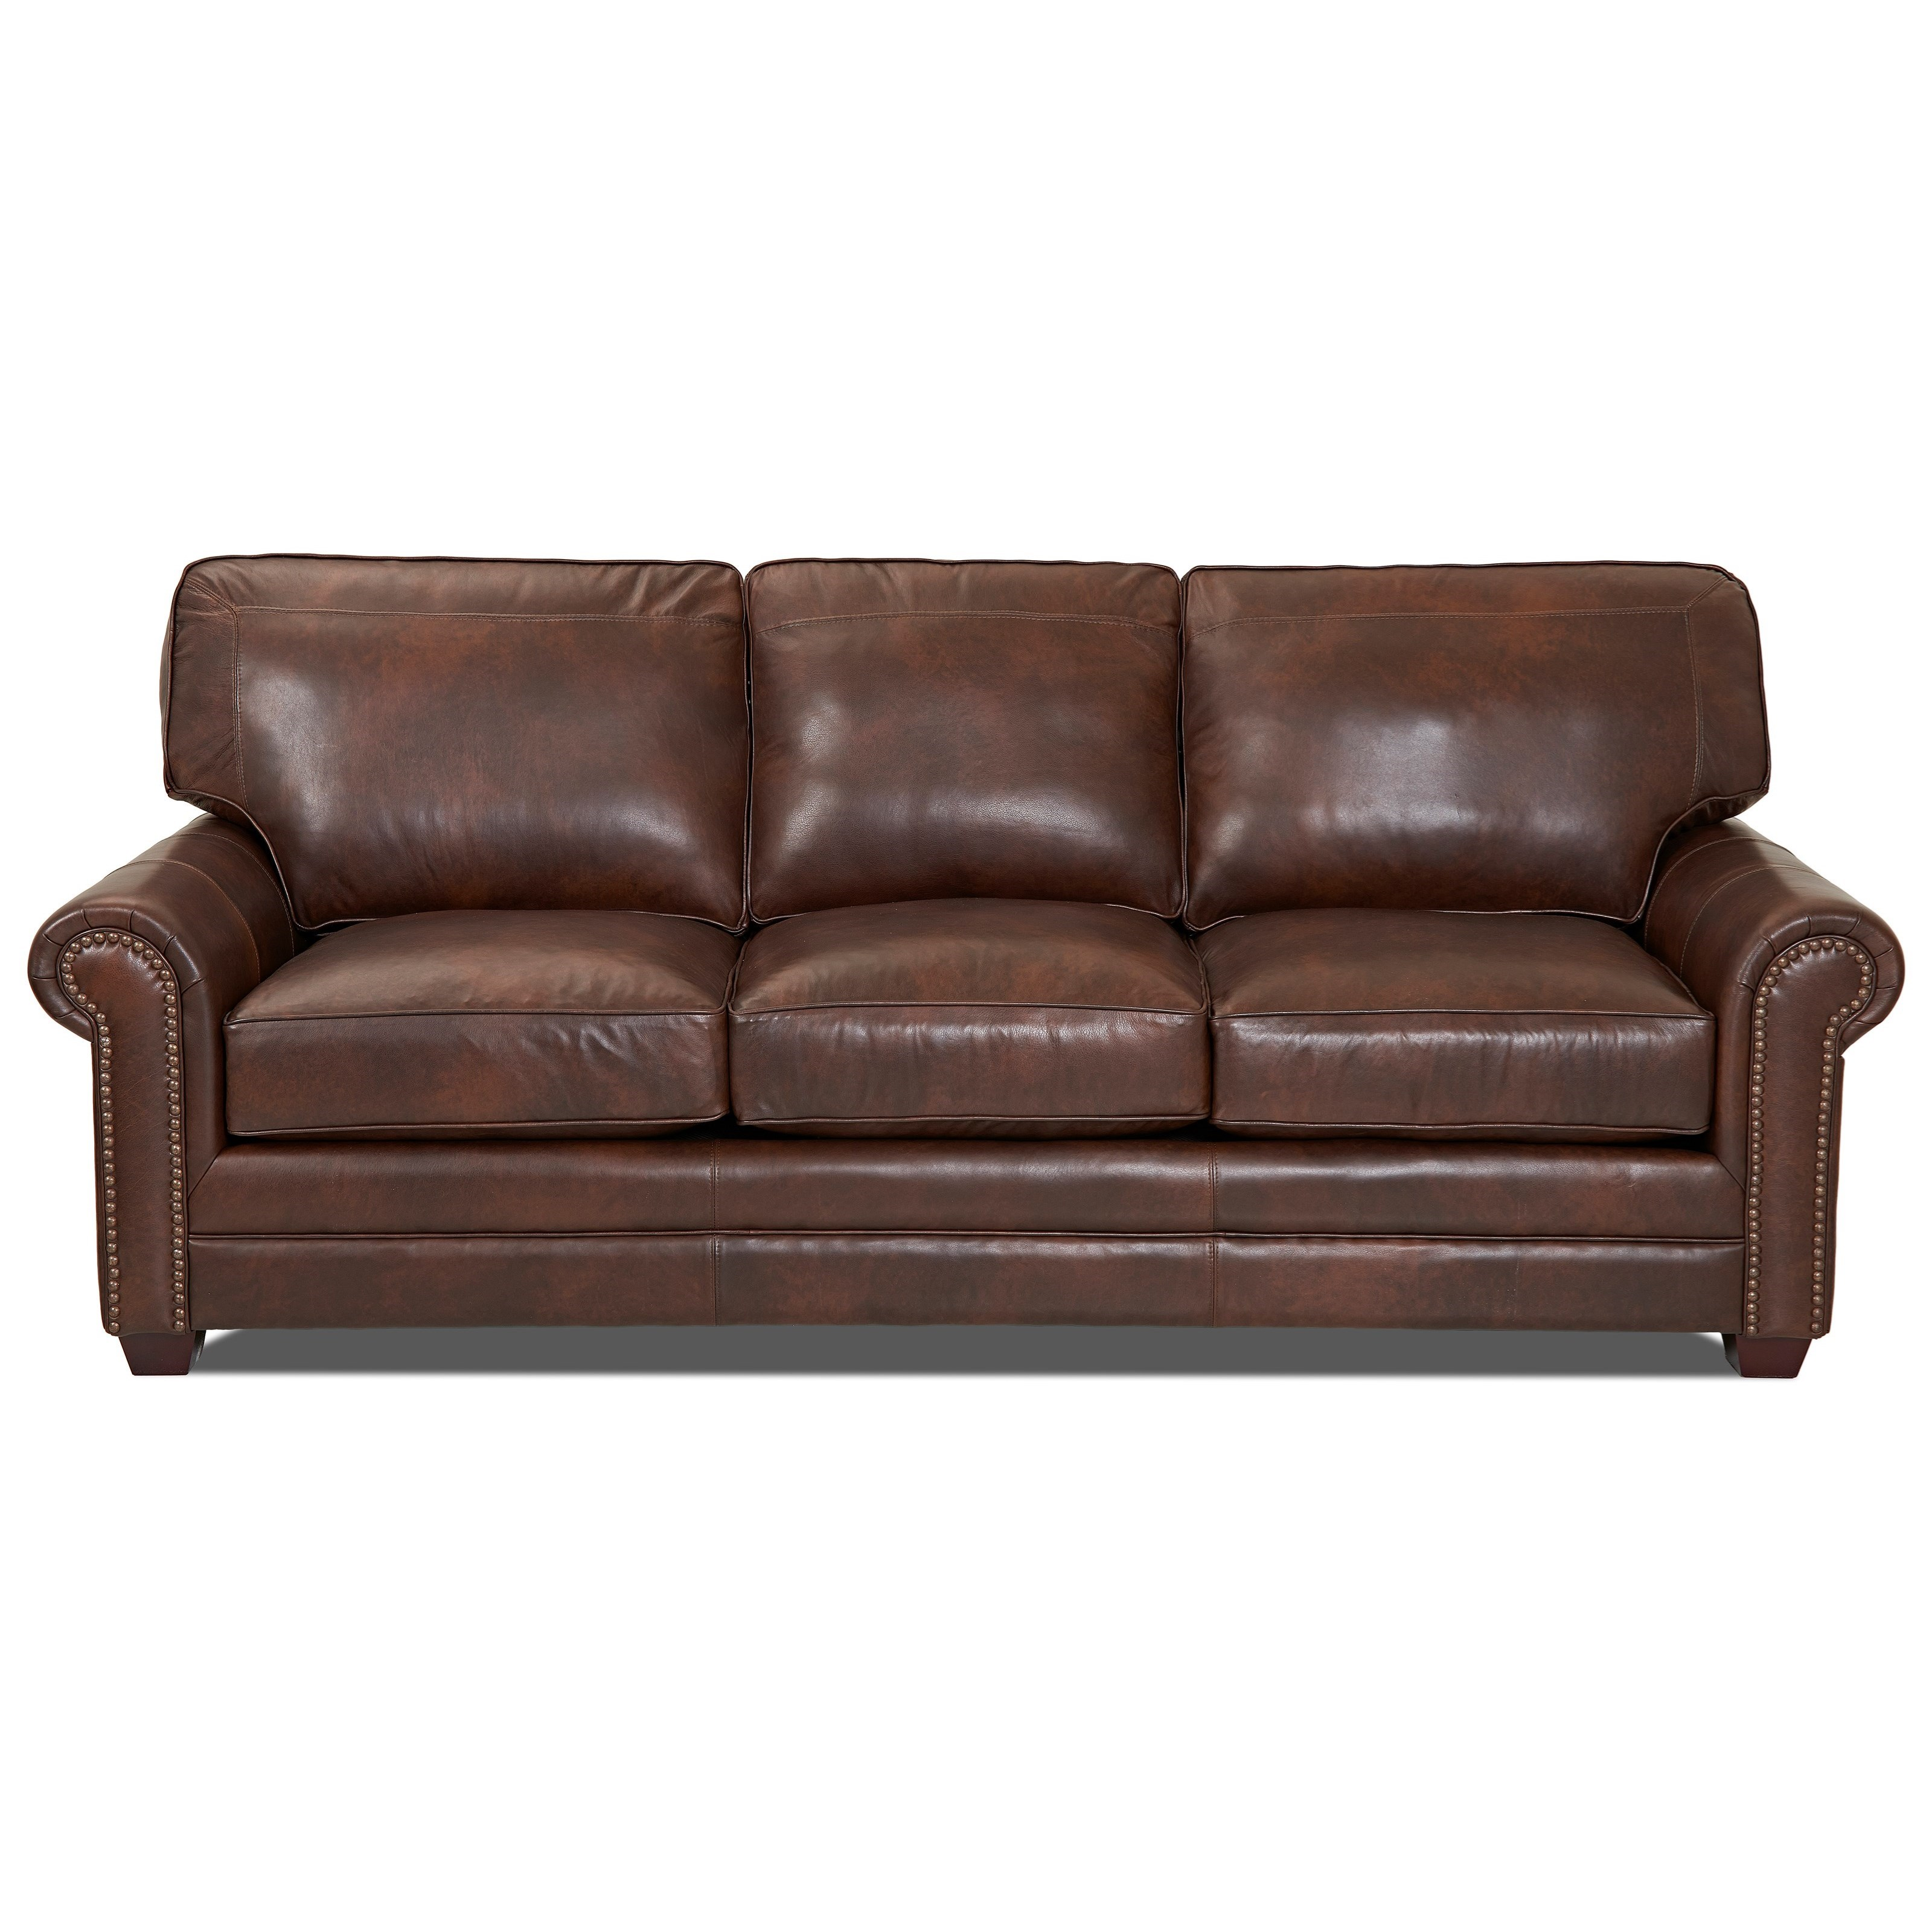 Transitional Leather Sofa with Nailheads